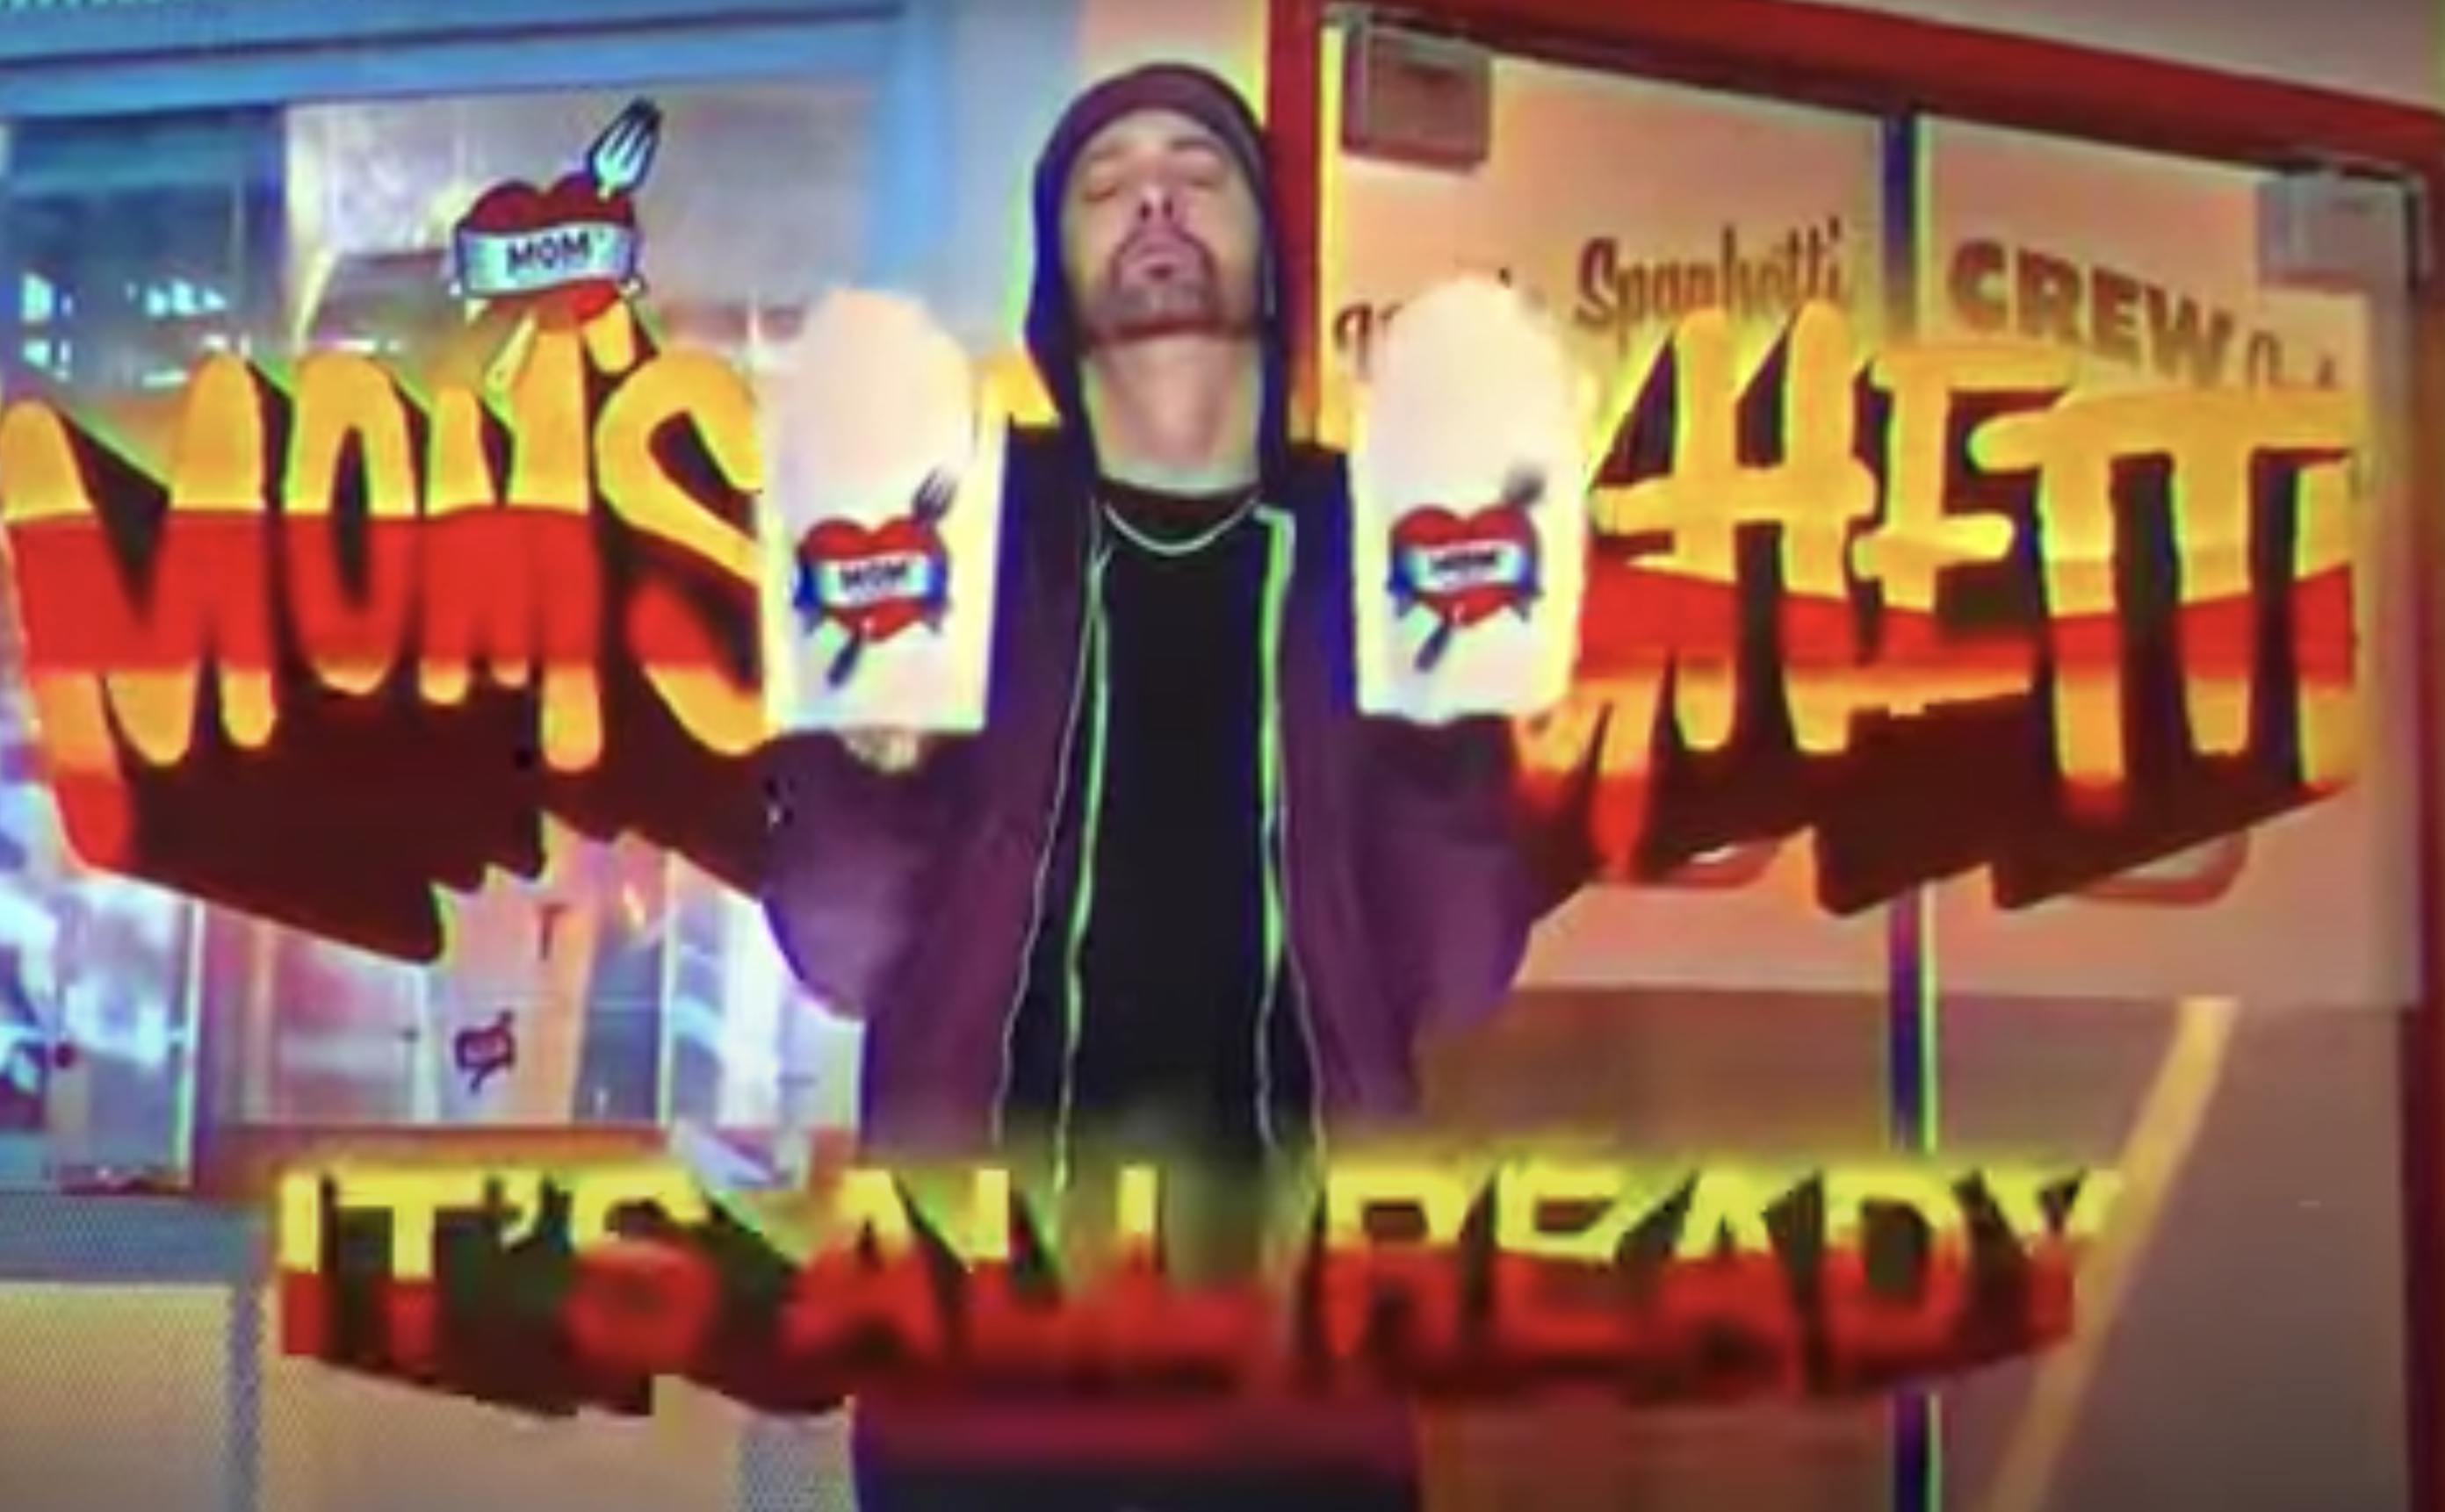 A screen grab of the television commercial shows Eminem in front of the Detroit skyline holding cartons of spaghetti.